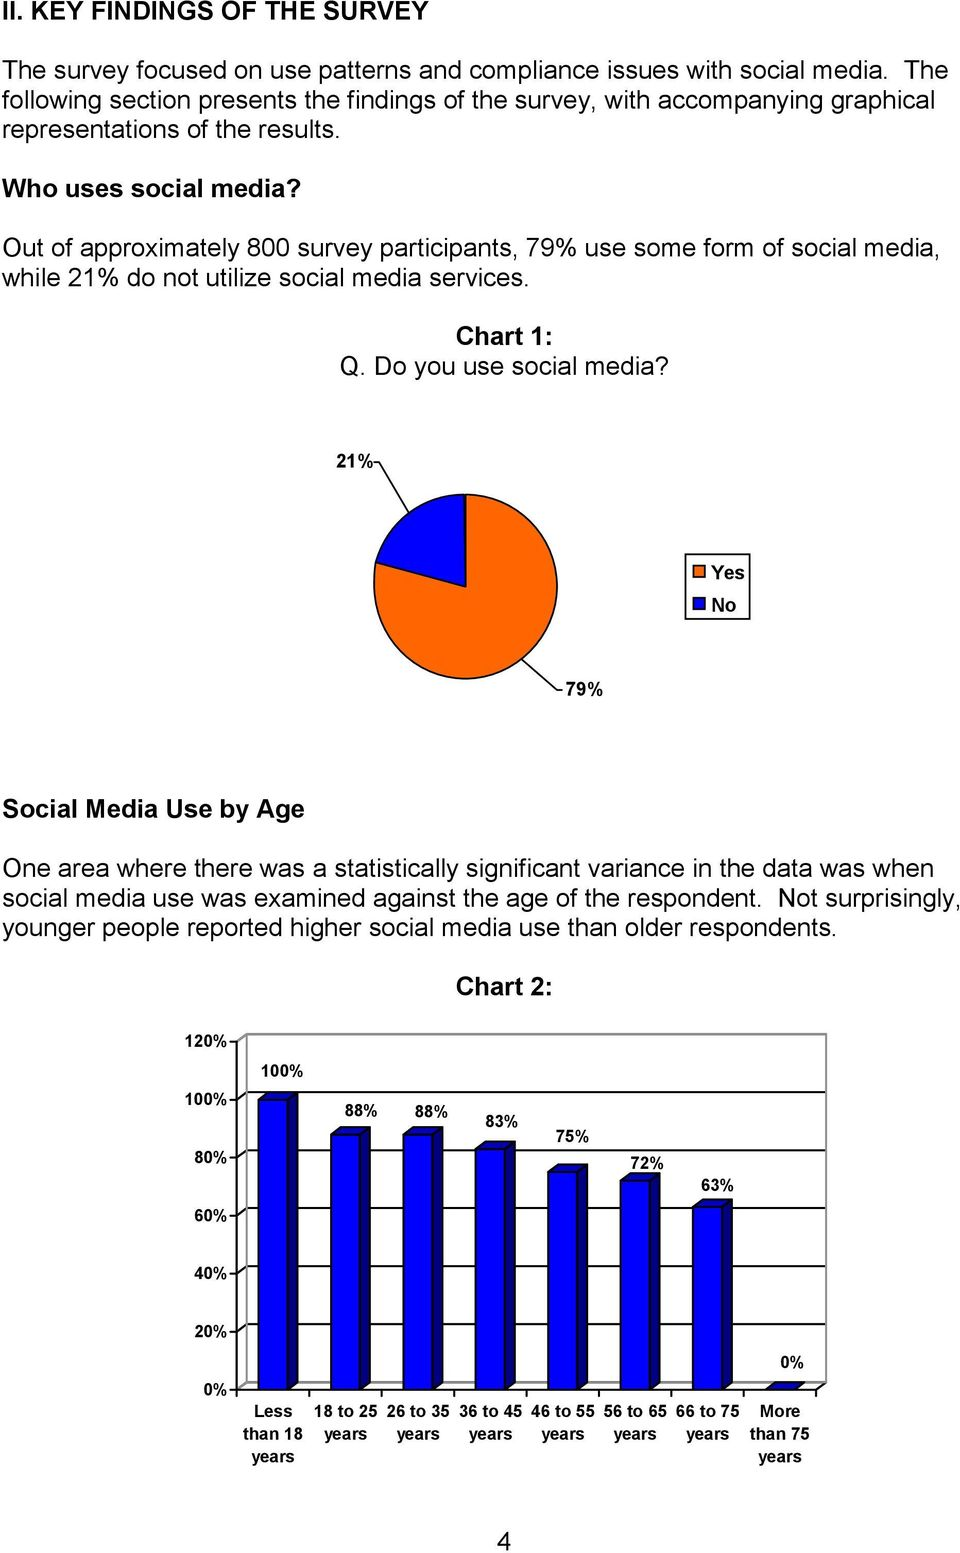 Out of approximately 800 survey participants, 79% use some form of social media, while 21% do not utilize social media services. Chart 1: Q. Do you use social media?